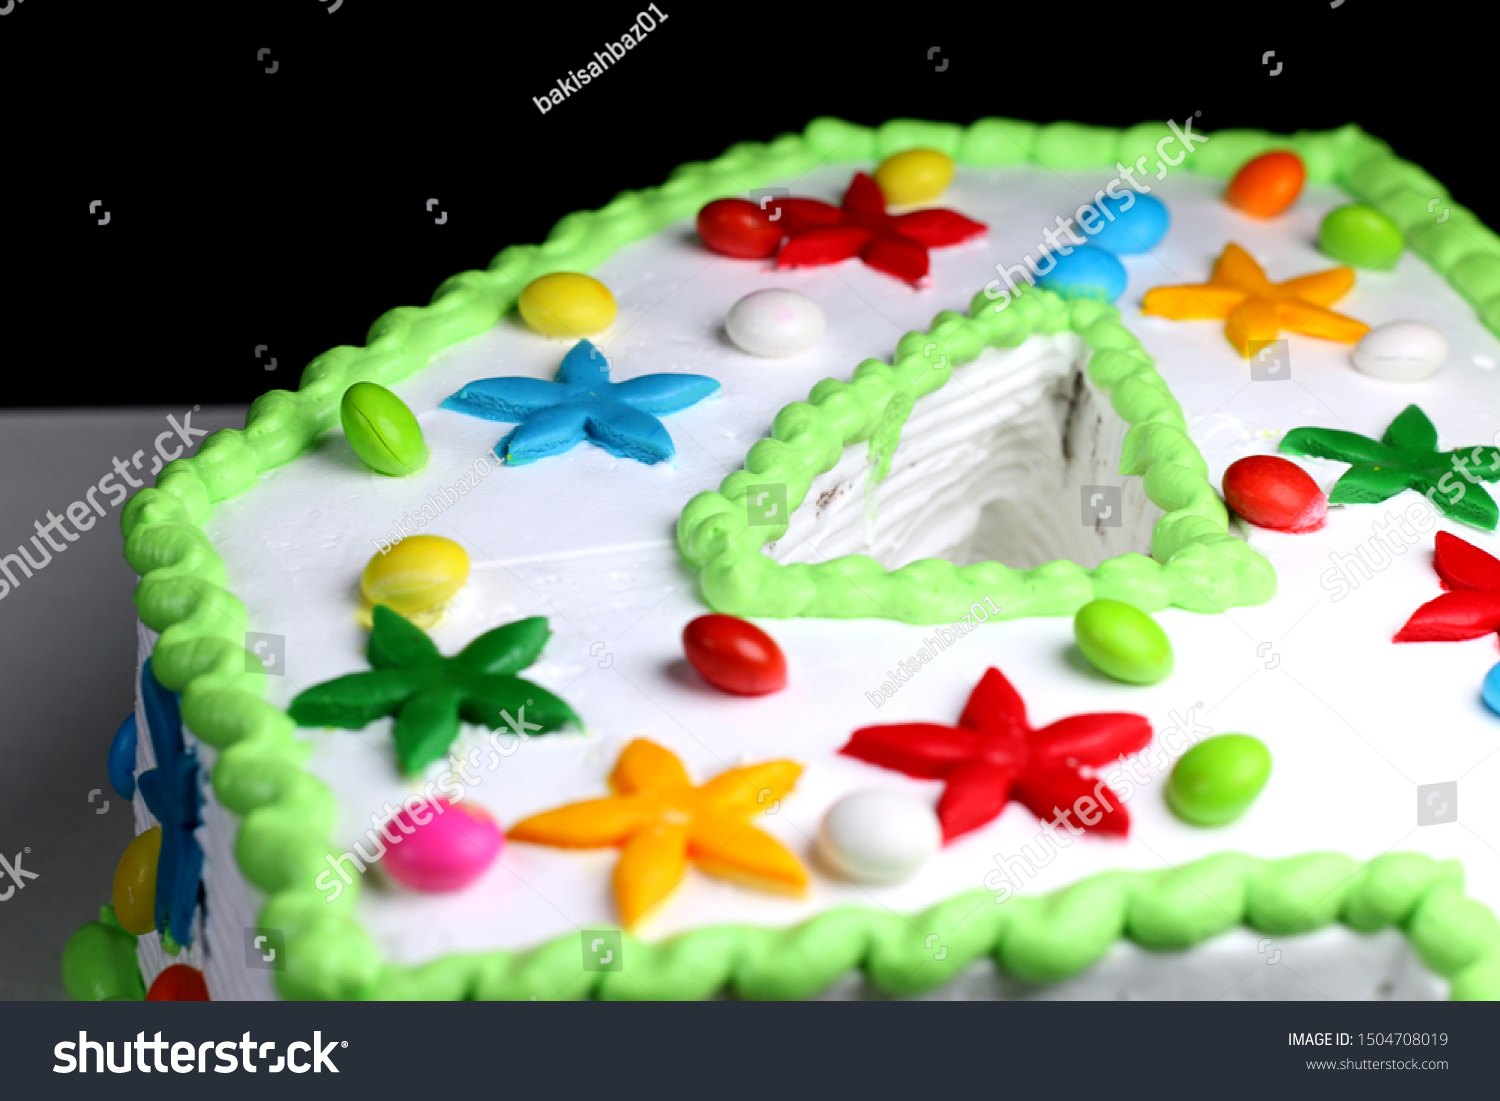 Swell 4 Years Old Colorful Sweet Birthday Stock Photo Edit Now 1504708019 Personalised Birthday Cards Veneteletsinfo